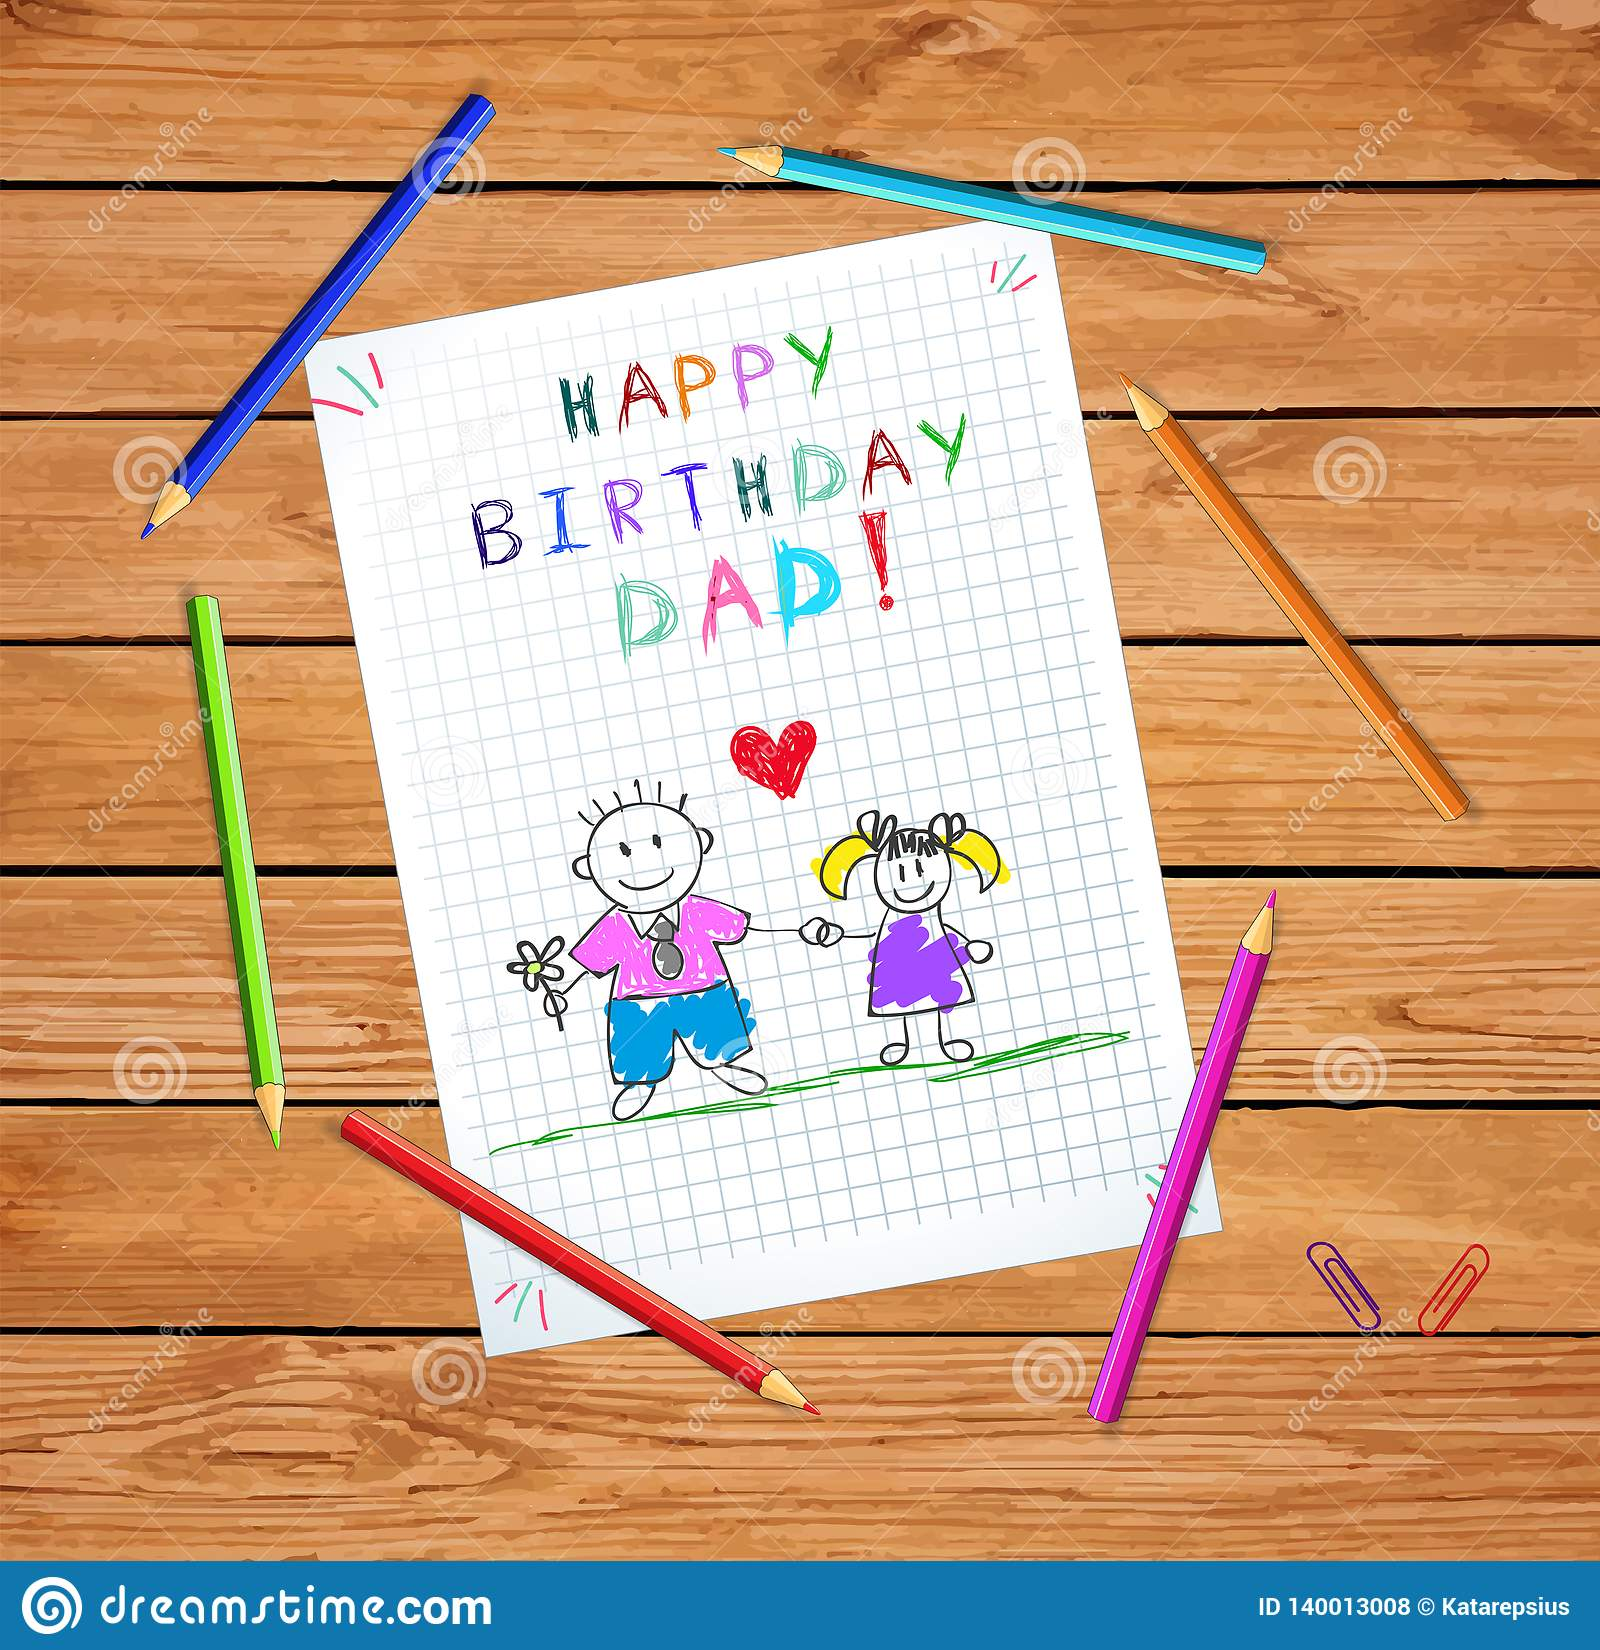 Happy Birthday Dad Drawing Of Father And Daughter Stock Vector Illustration Of Draw Colored 140013008